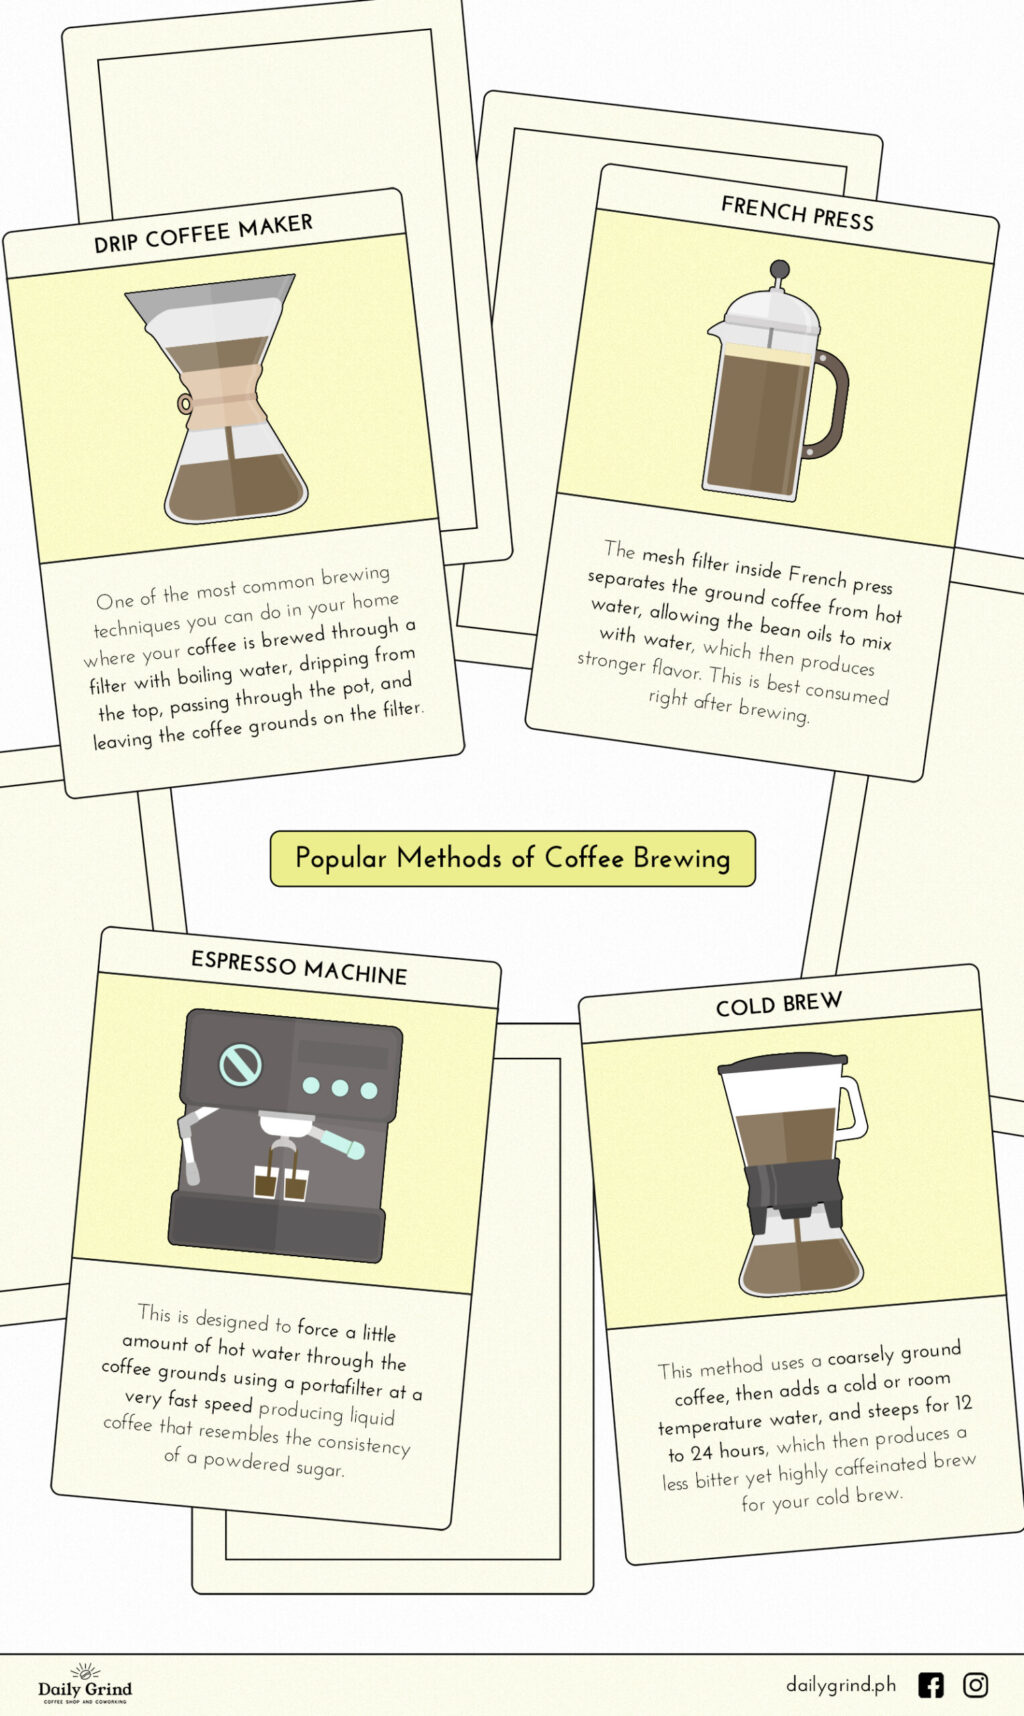 infographic on the popular methods of coffee brewing